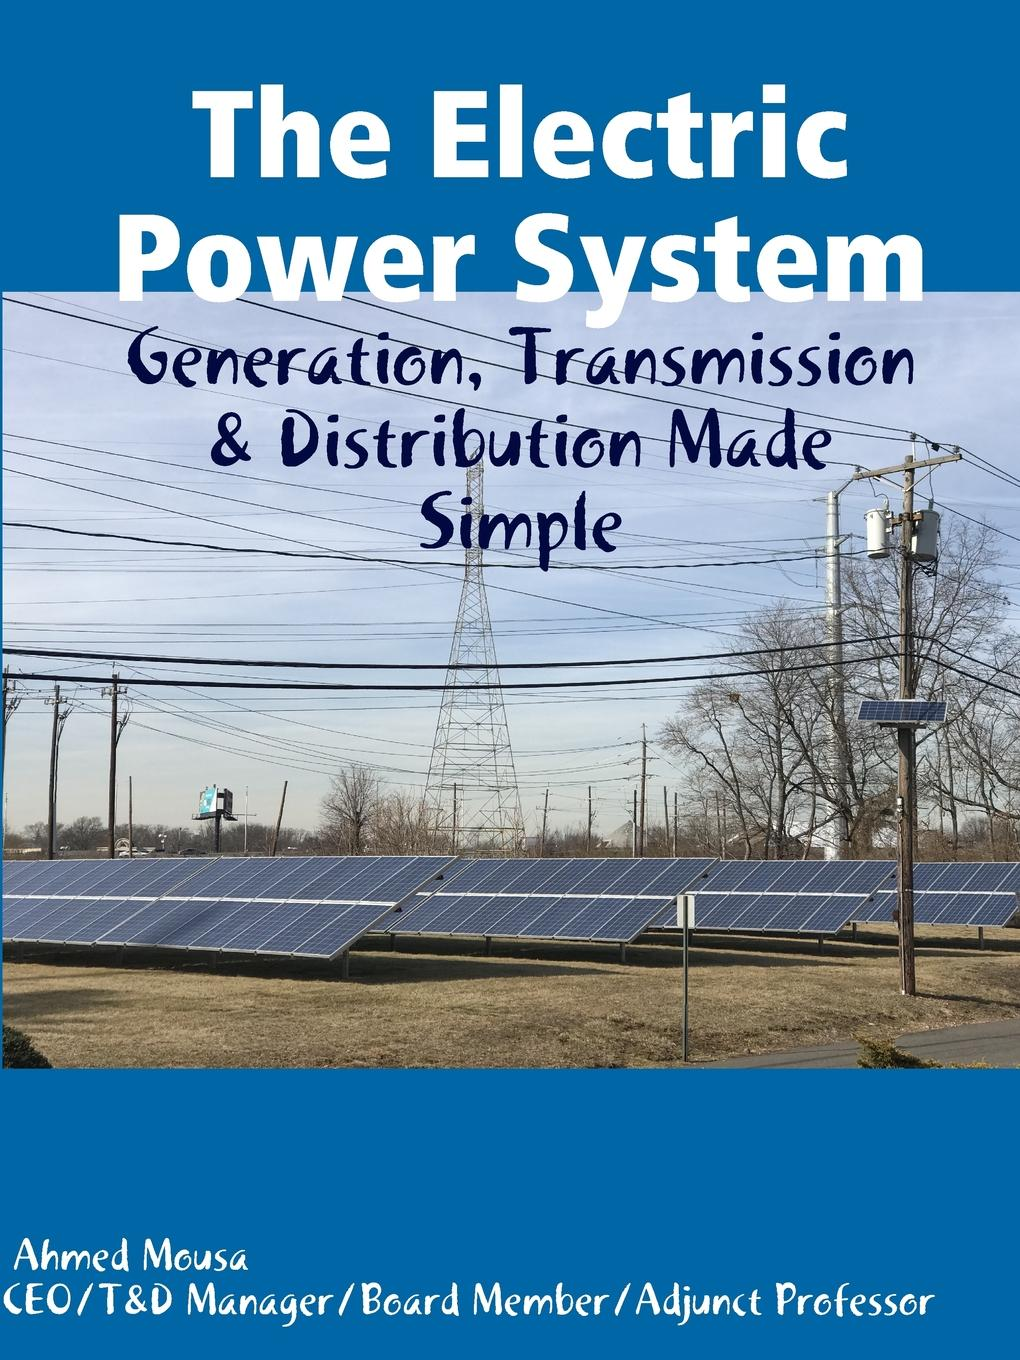 цена на Ahmed Mousa The Electric Power System. Generation, Transmission . Distribution Made Simple